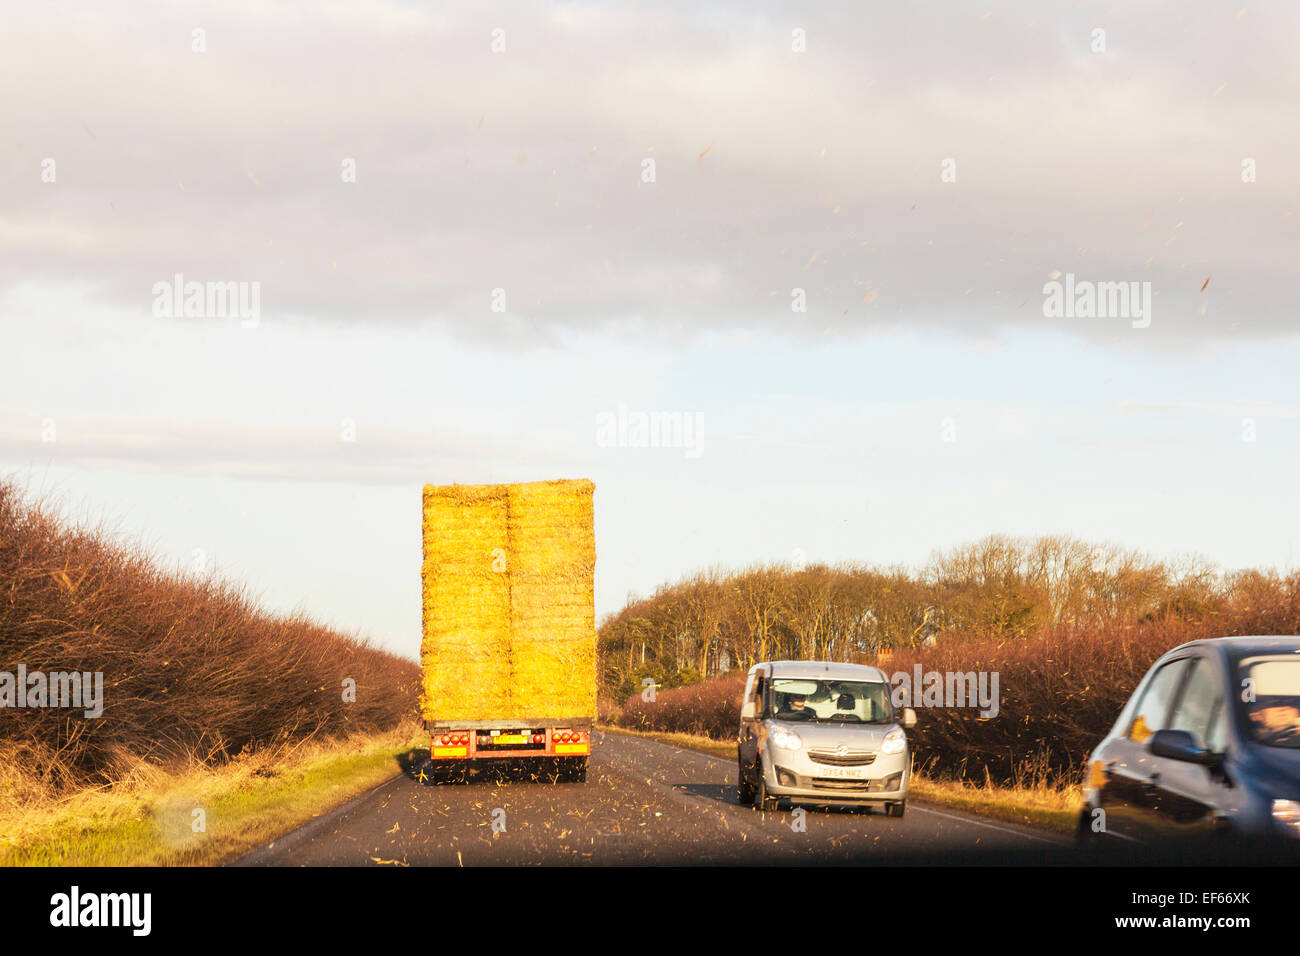 truck lorry carrying straw bails leaving trail of hay behind shedding load distraction distracting driving dangerous - Stock Image